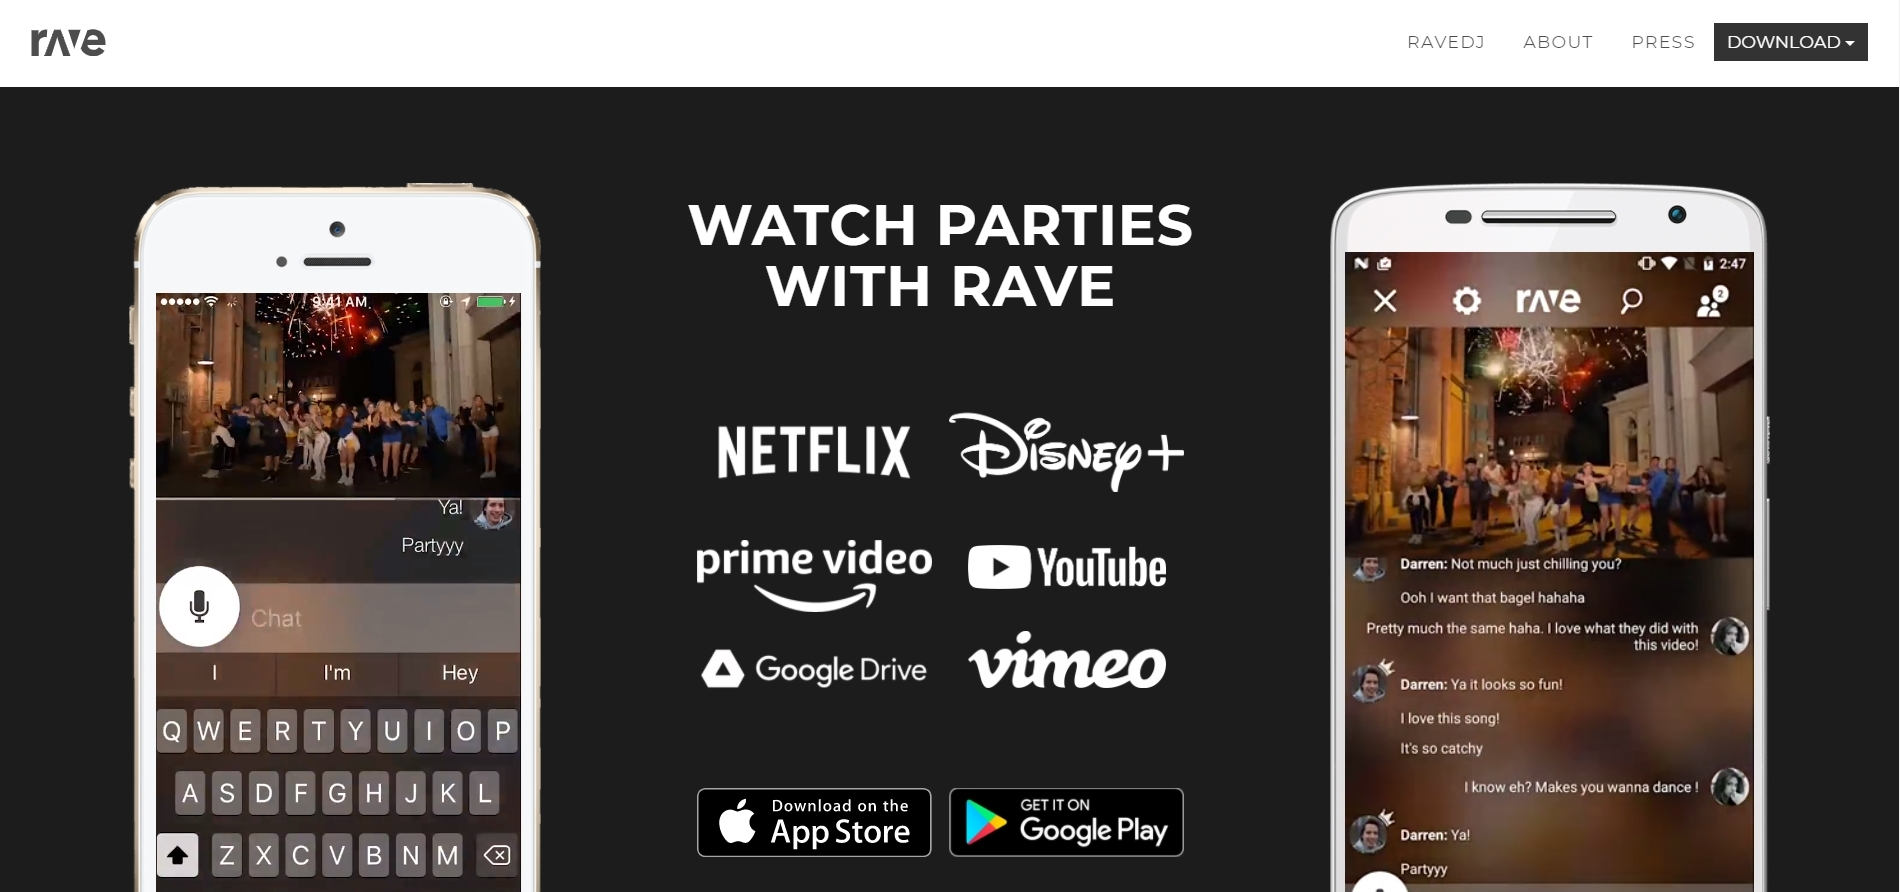 Rave.io - Watch2Gether Alternative